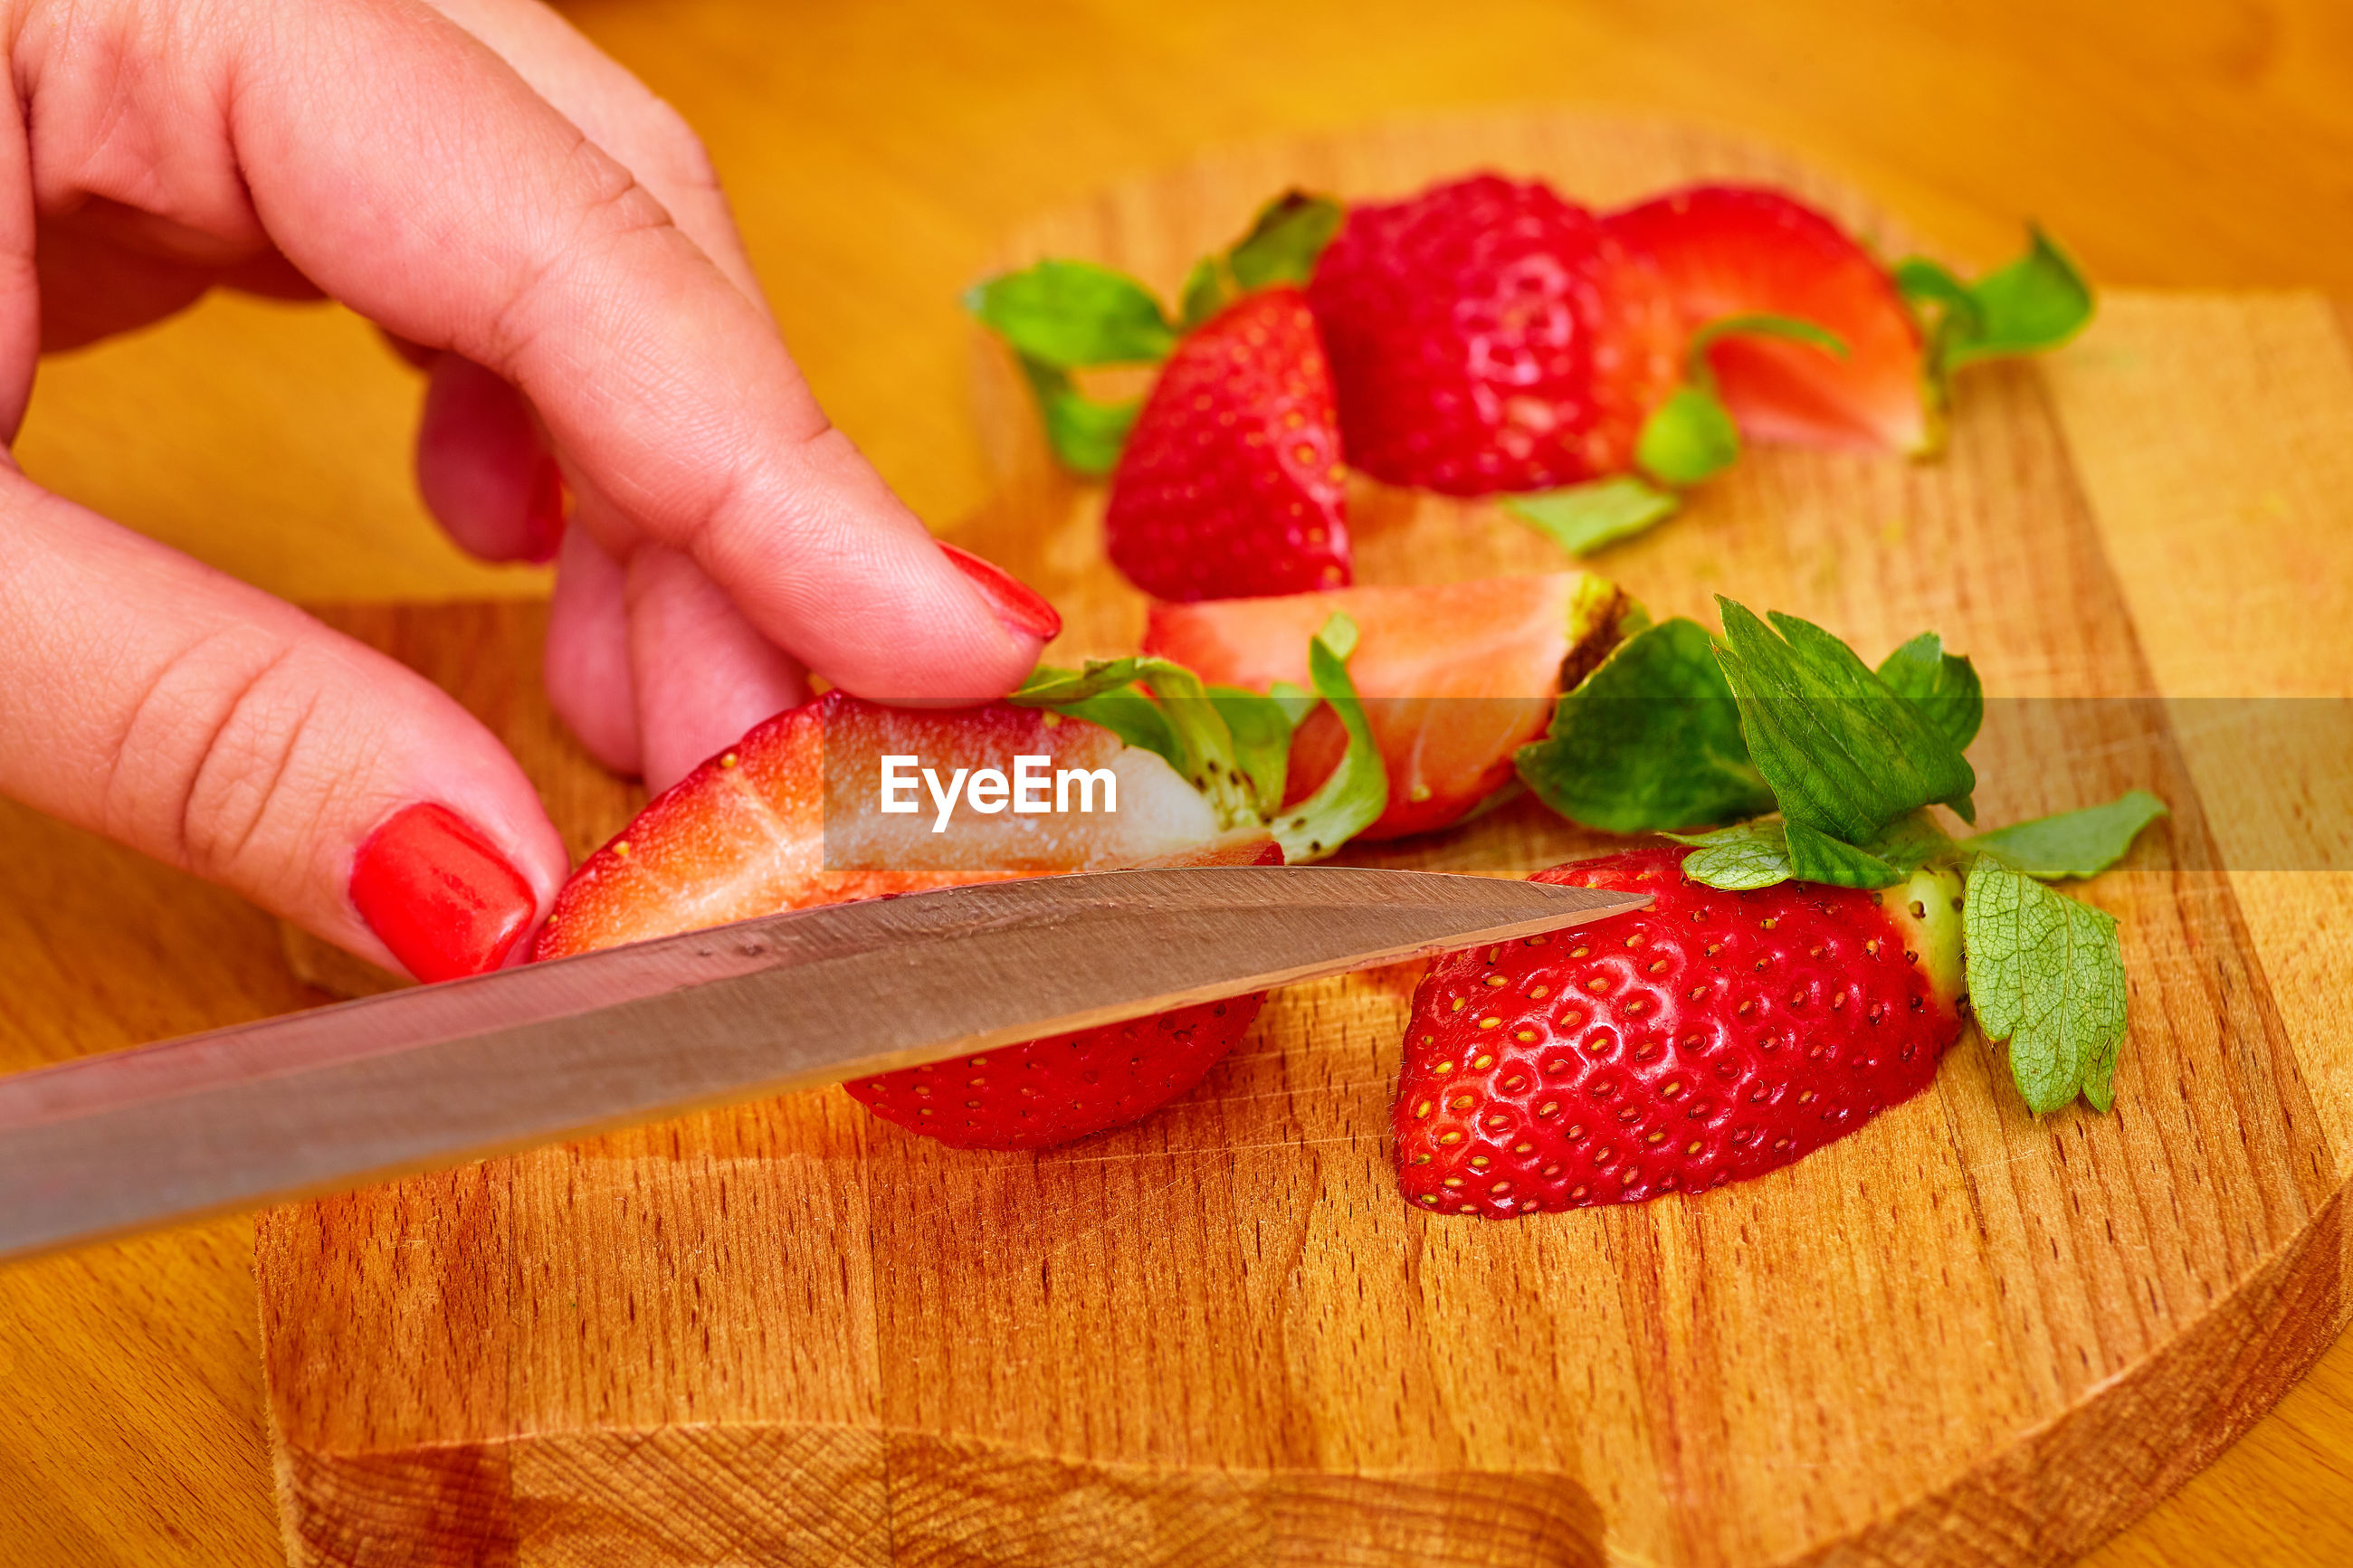 CLOSE-UP OF PERSON HOLDING STRAWBERRIES